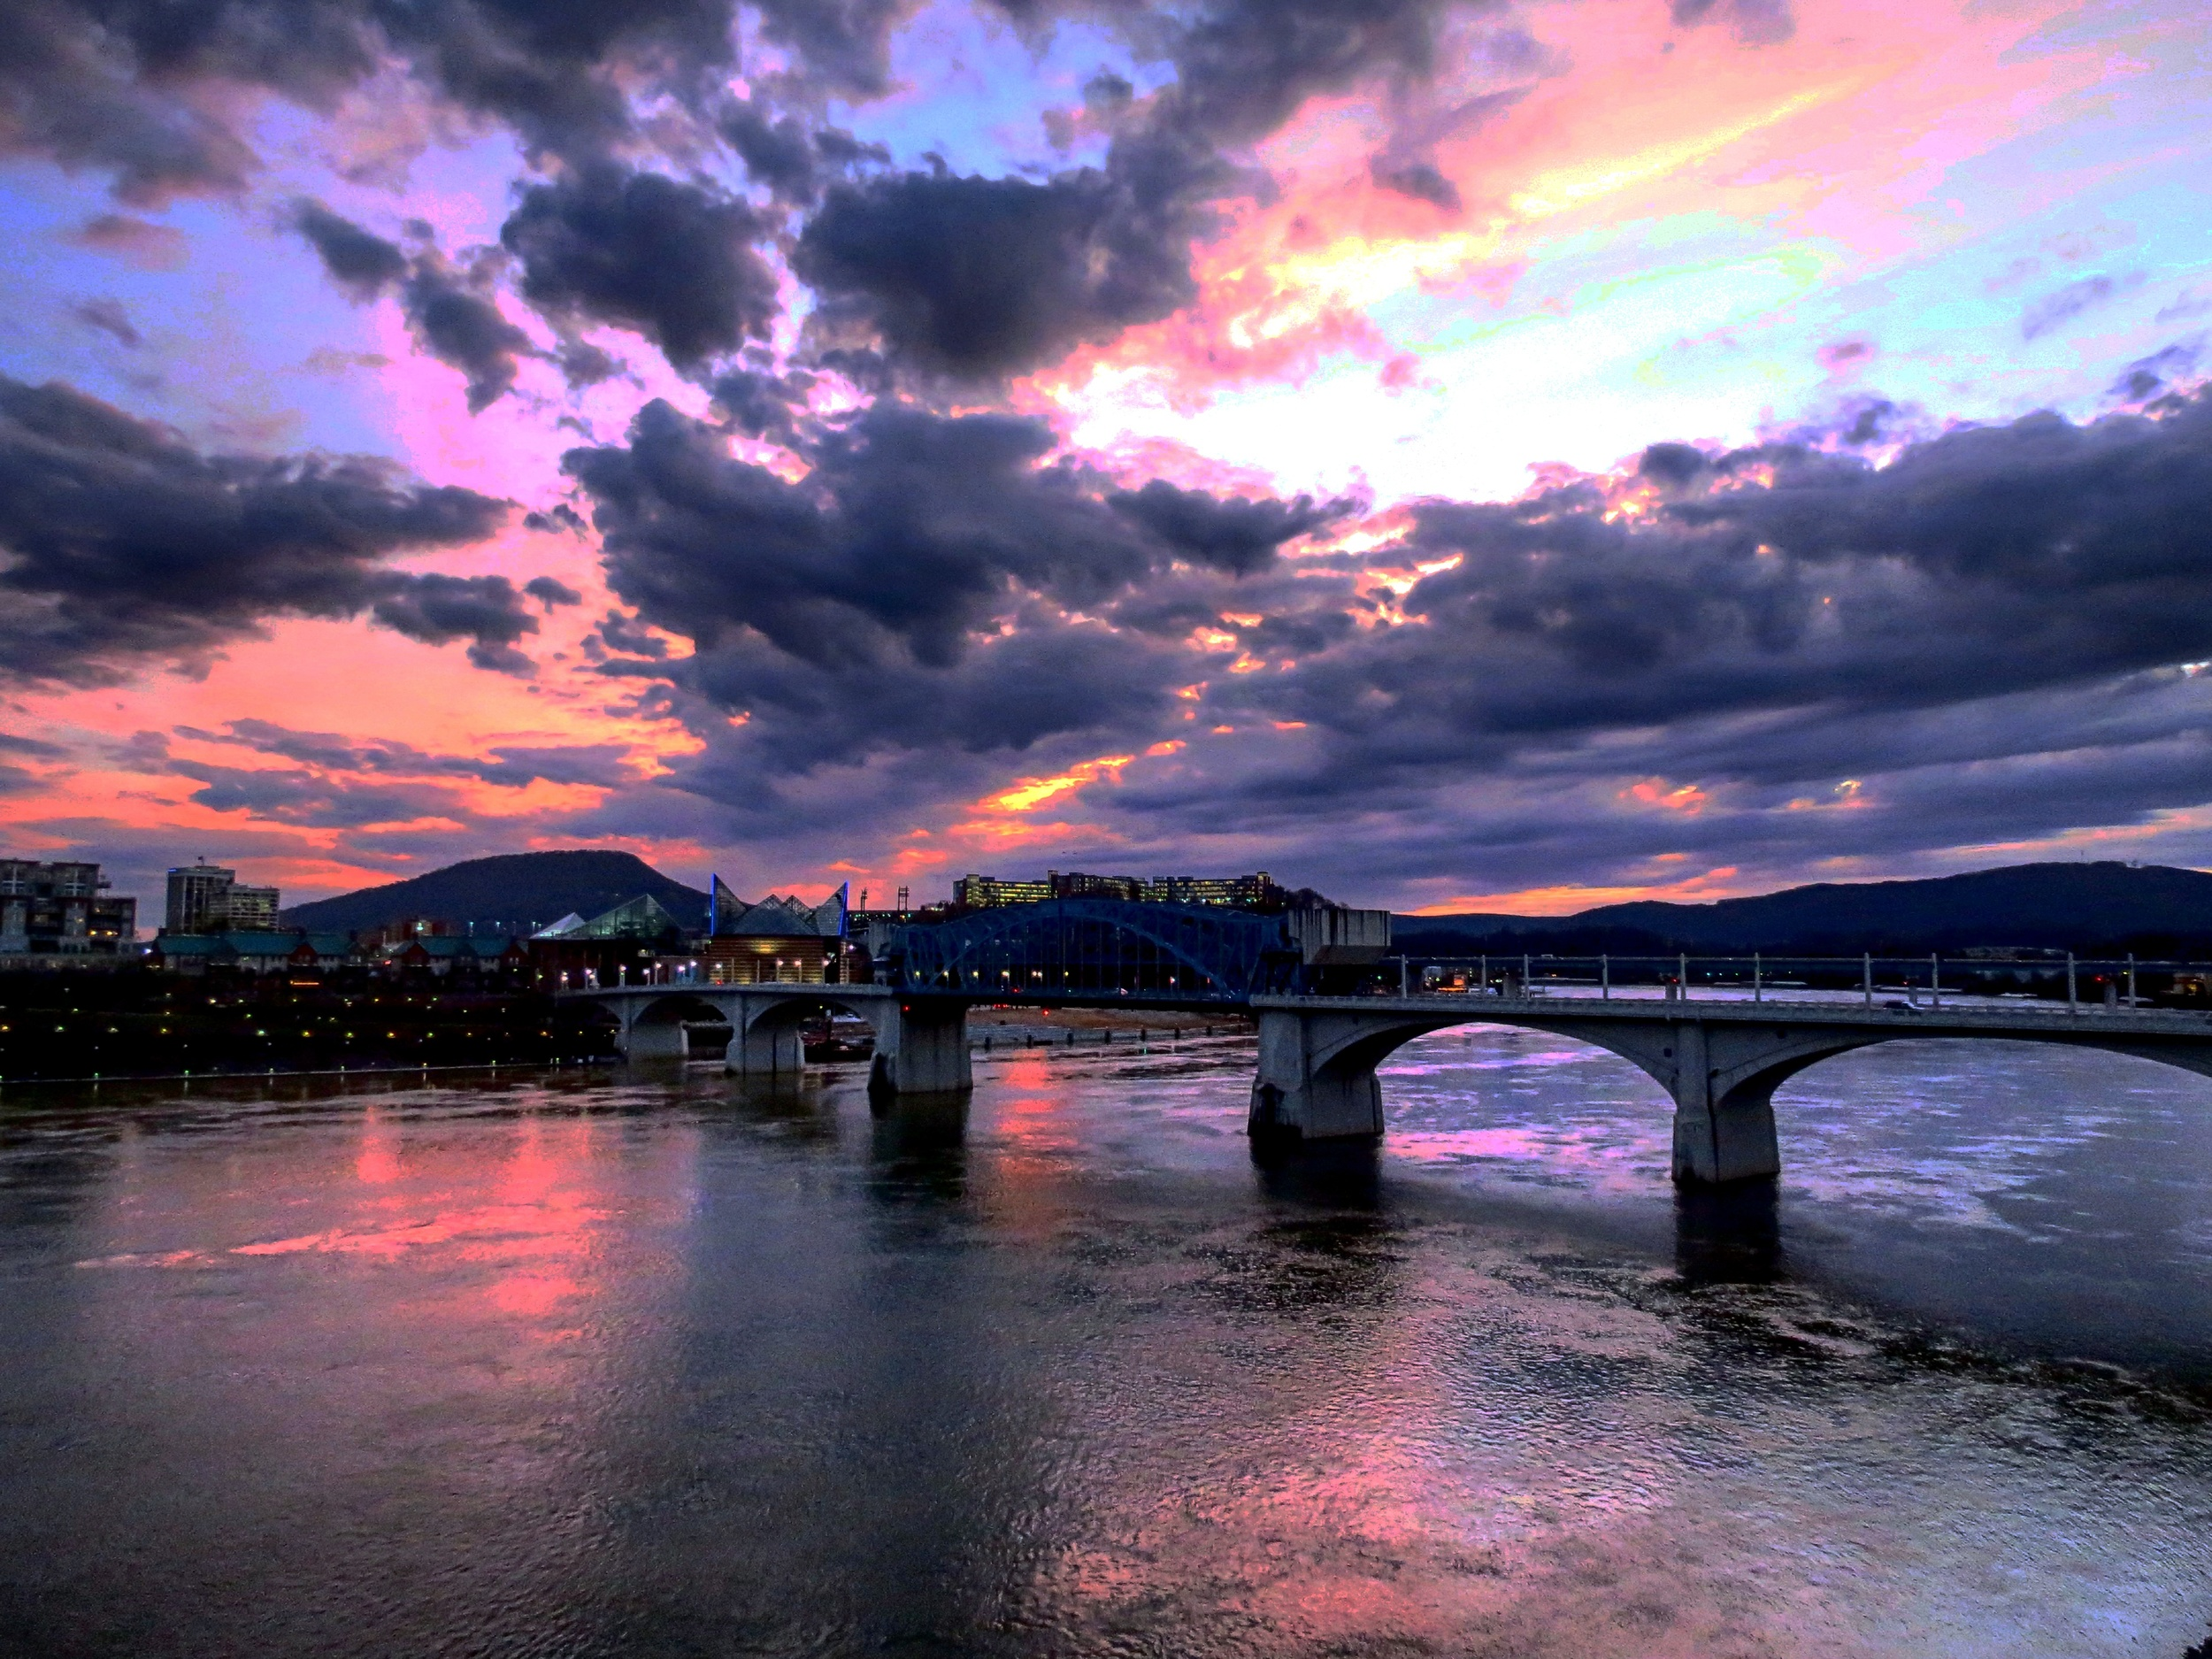 The Tennessee River in downtown Chattanooga courtesy of   Tony Fox